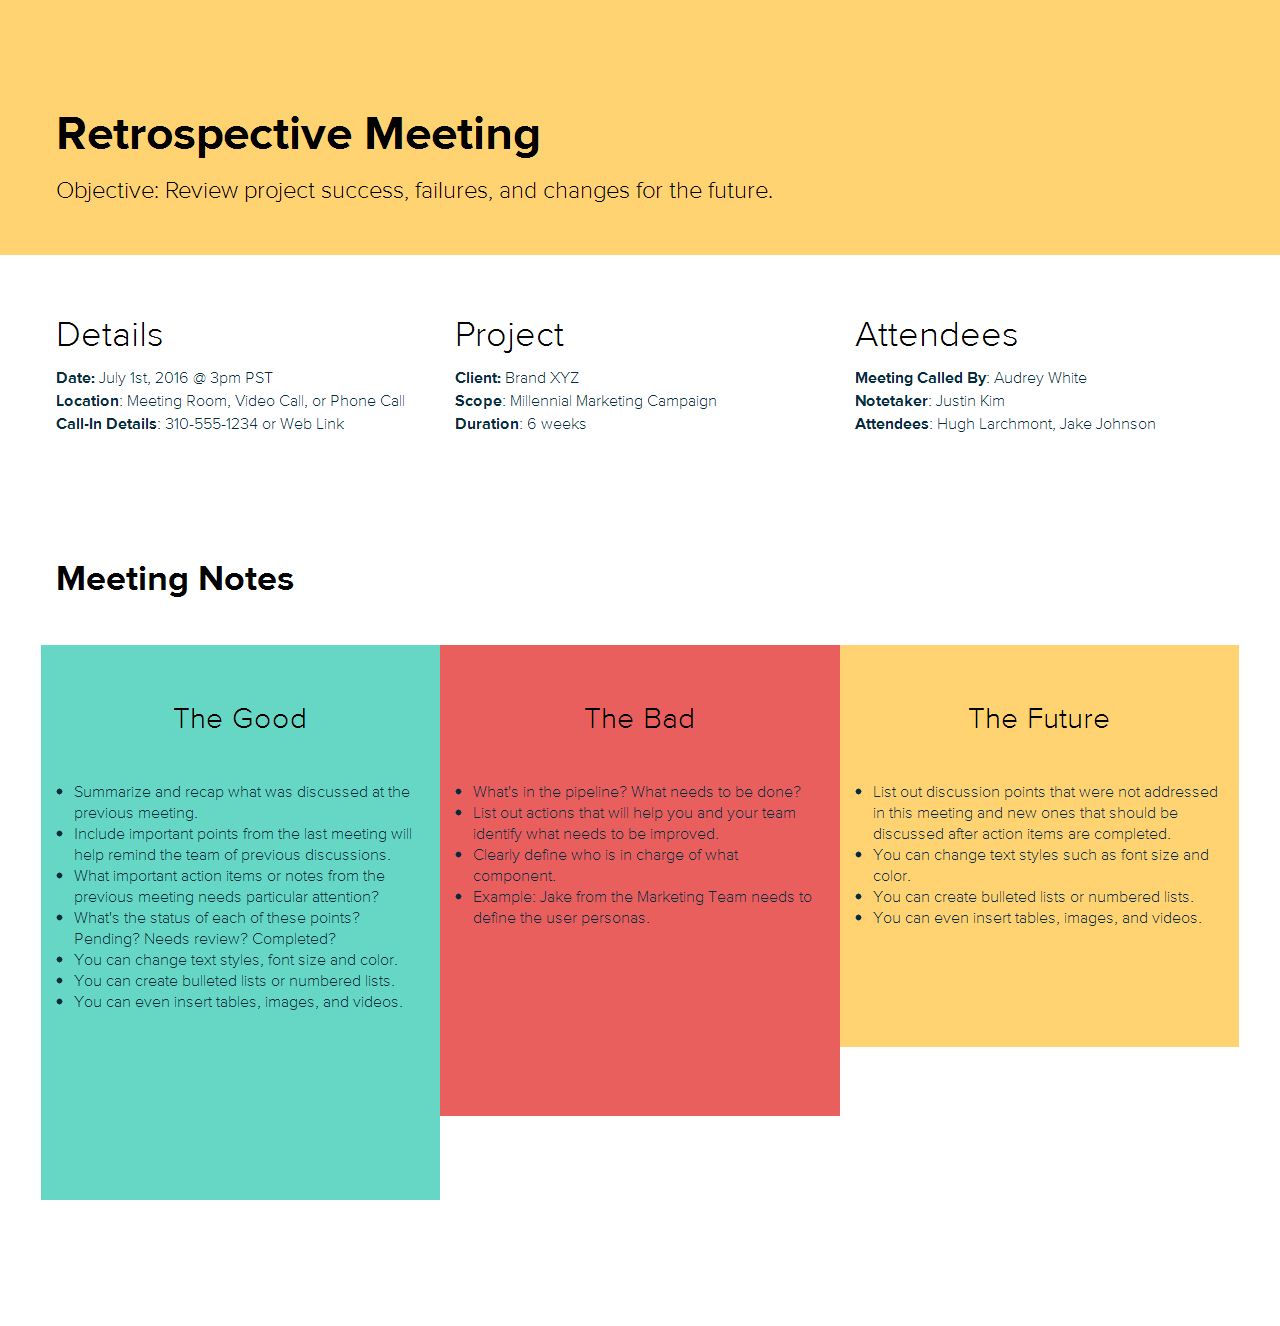 How to create a meeting agenda xtensio retro meeting agenda sample by xtensio thecheapjerseys Gallery